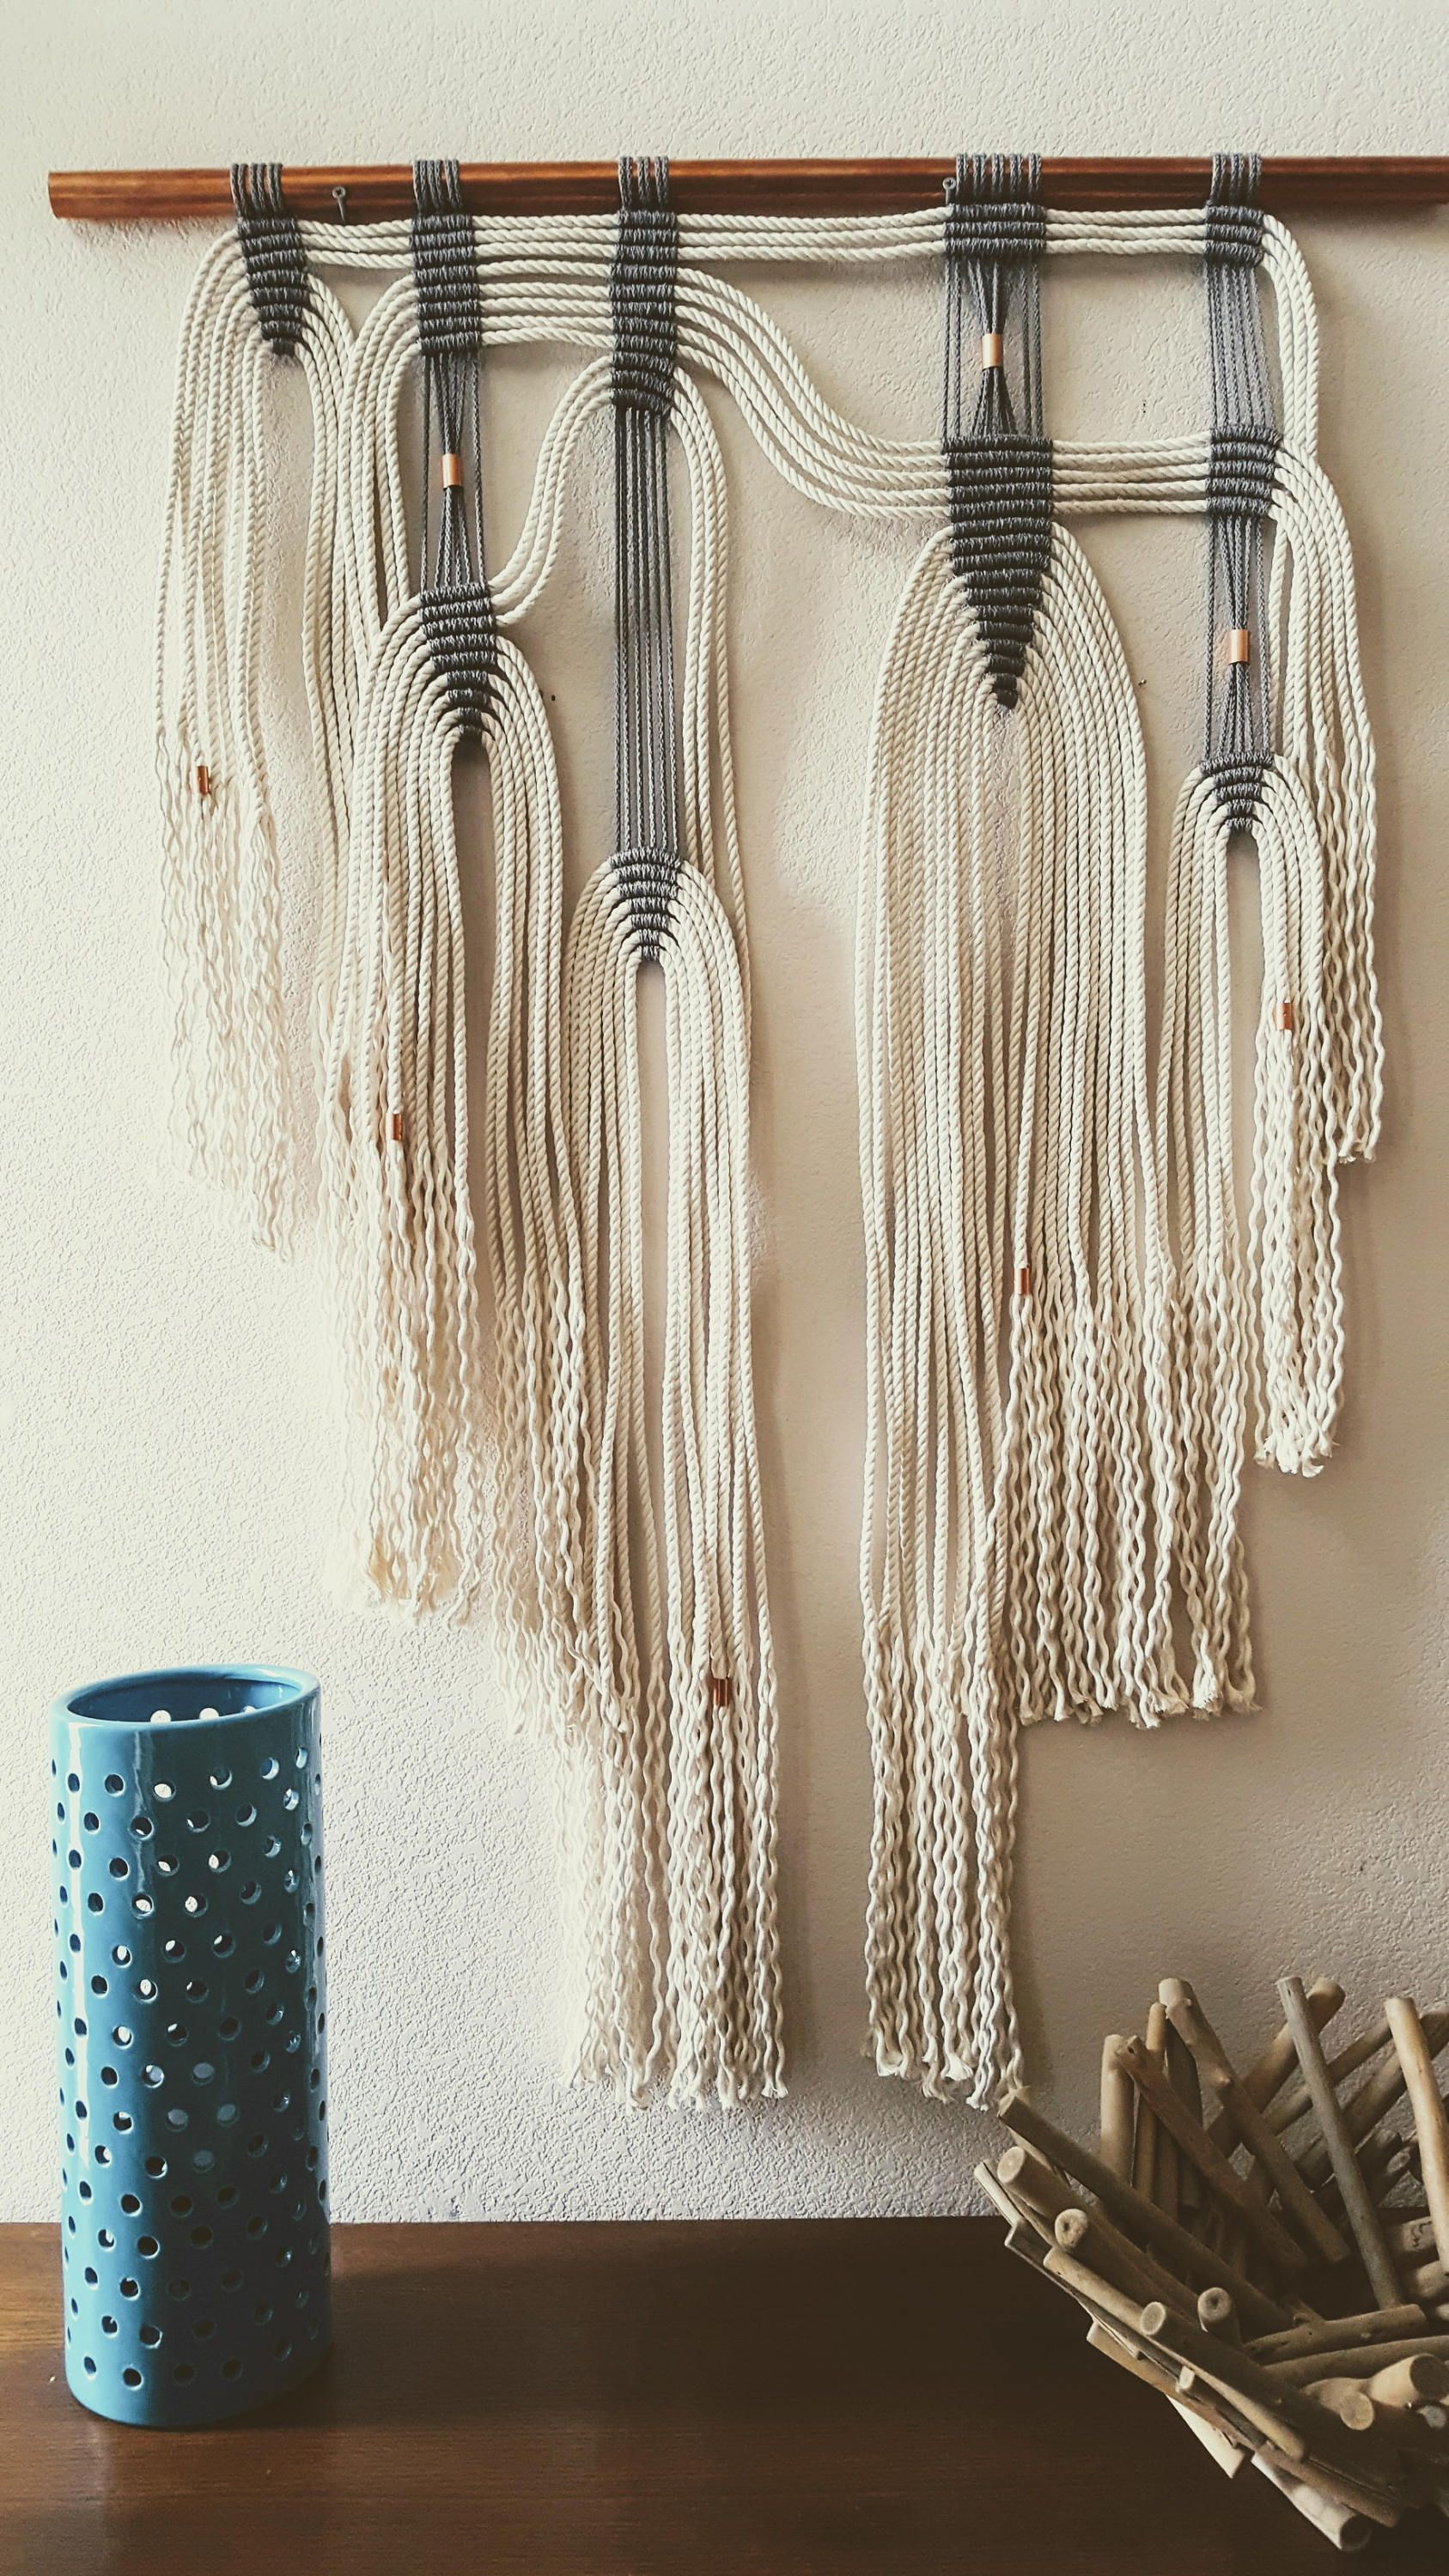 This Item Is Unavailable Modern Macrame Macrame Wall Hanging Macrame Projects